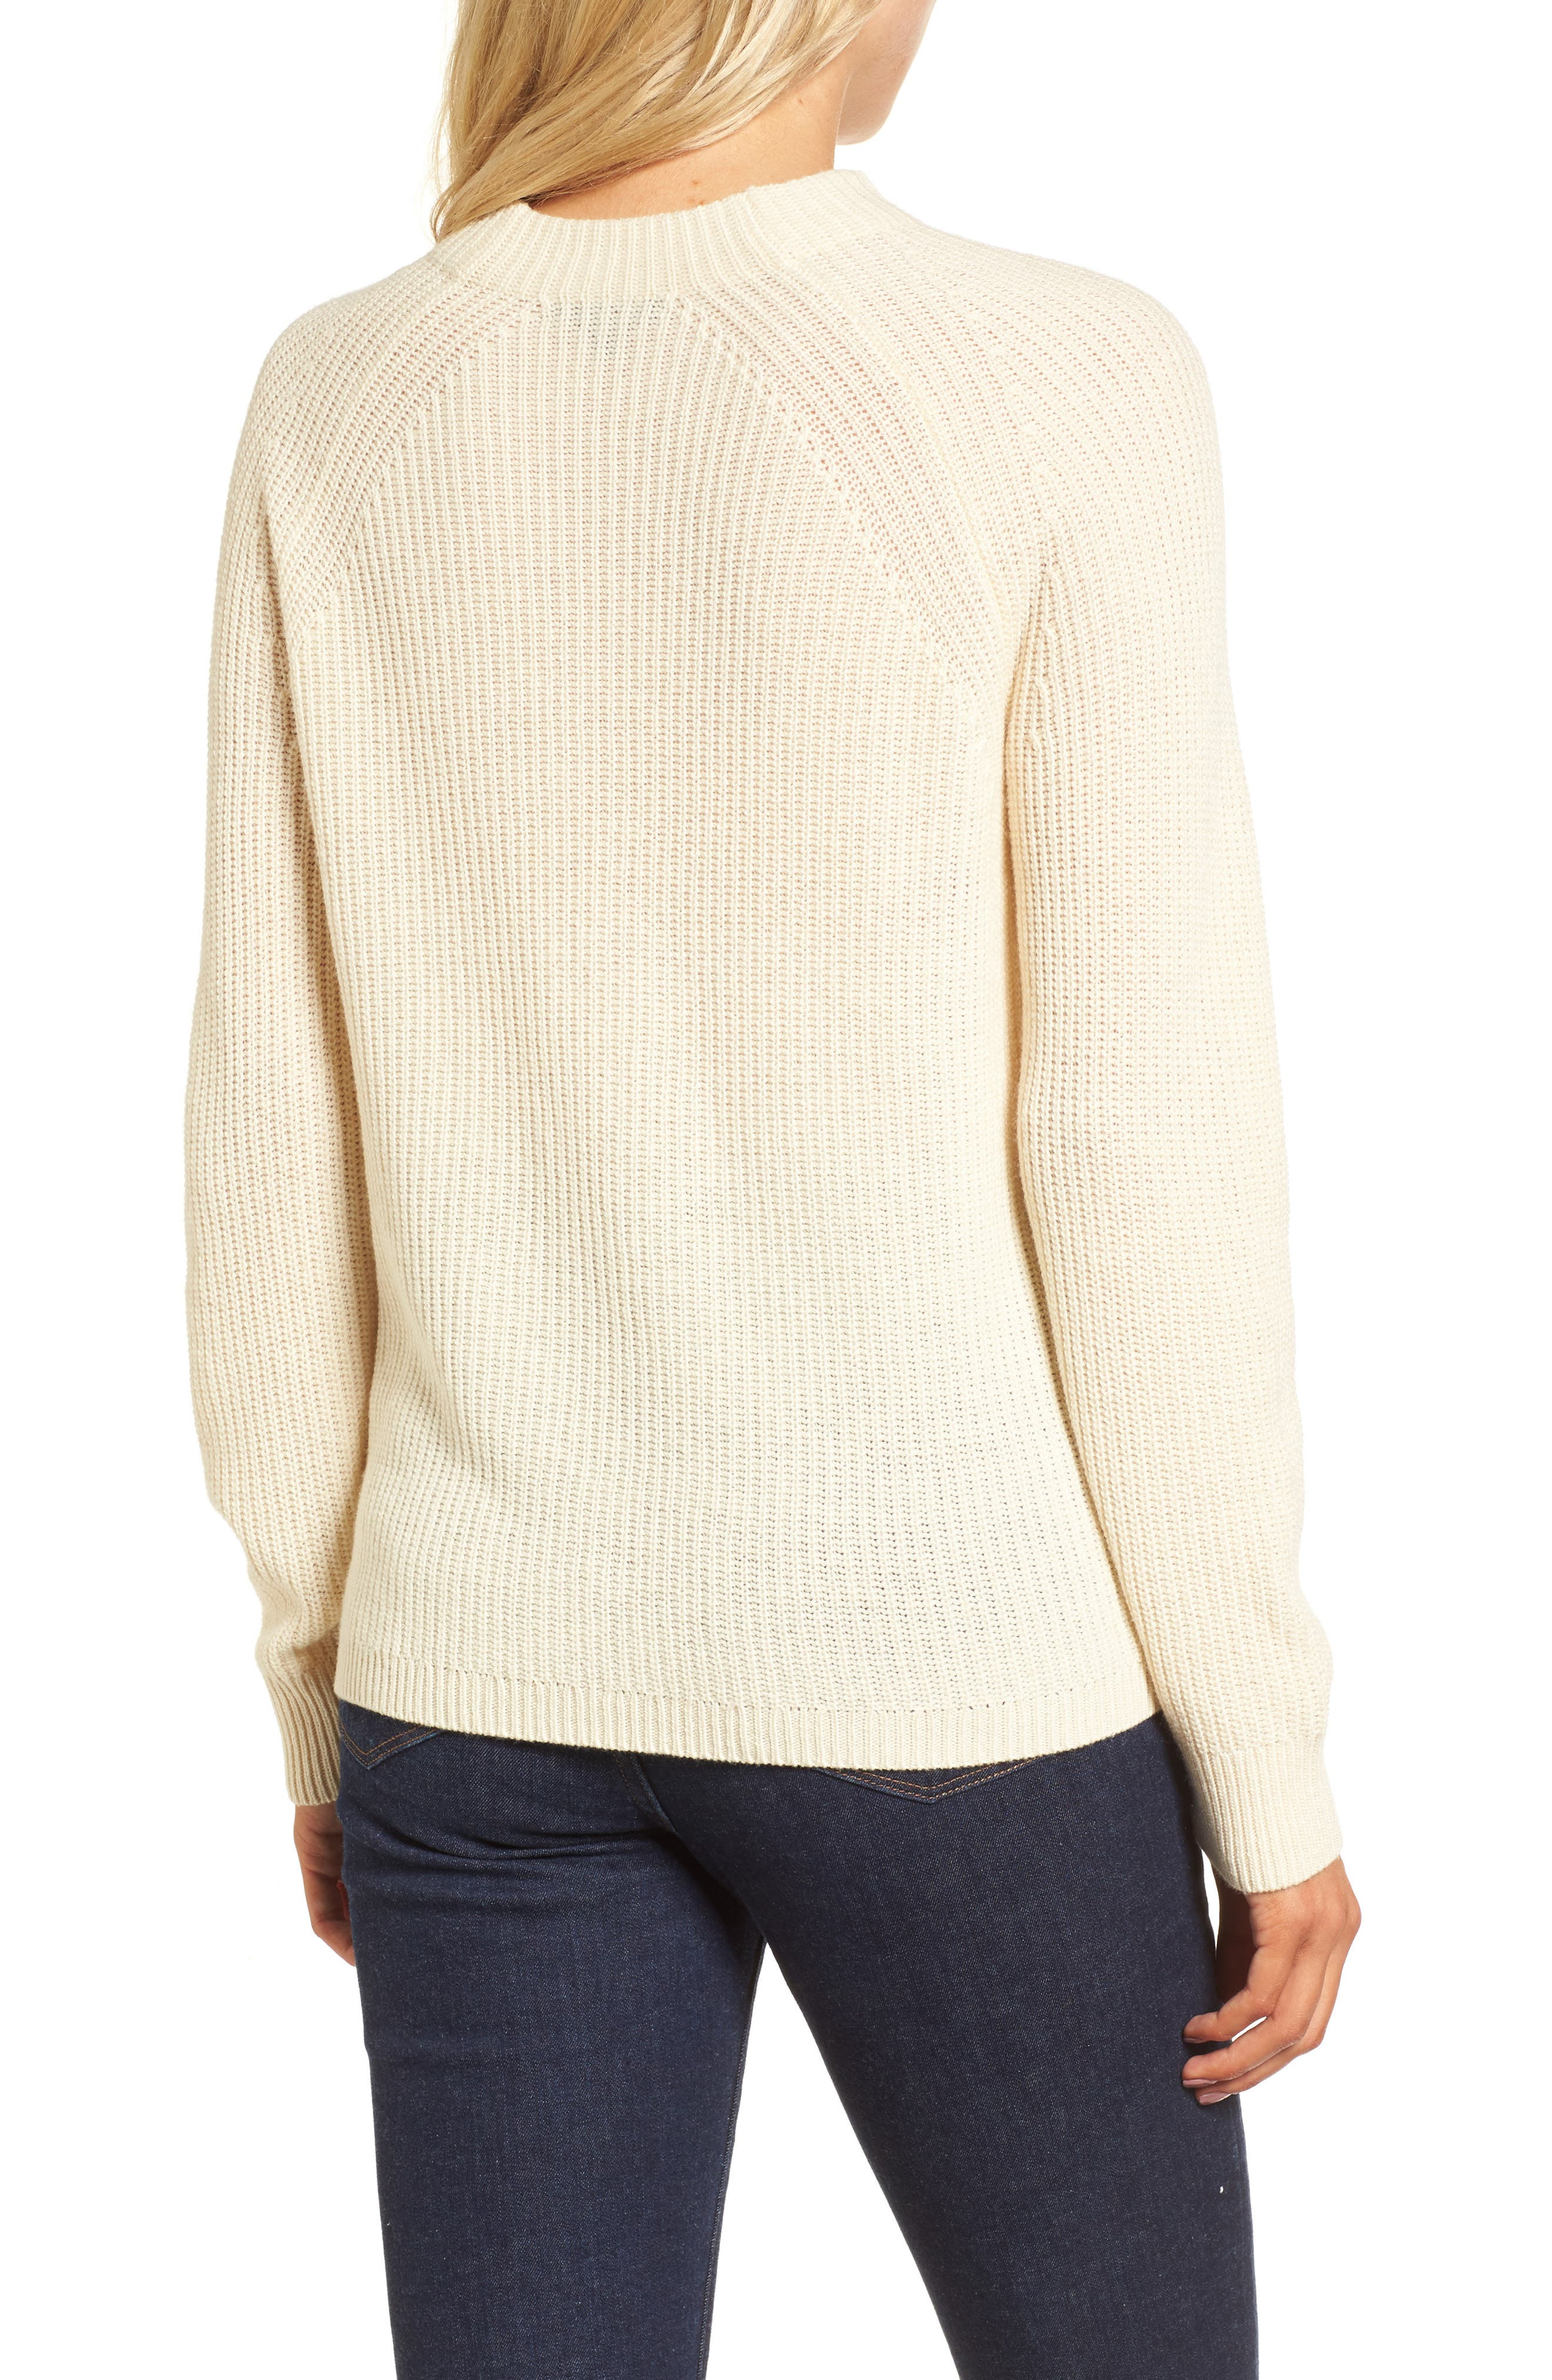 Gayle Tie Neck Sweater,                             Alternate thumbnail 5, color,